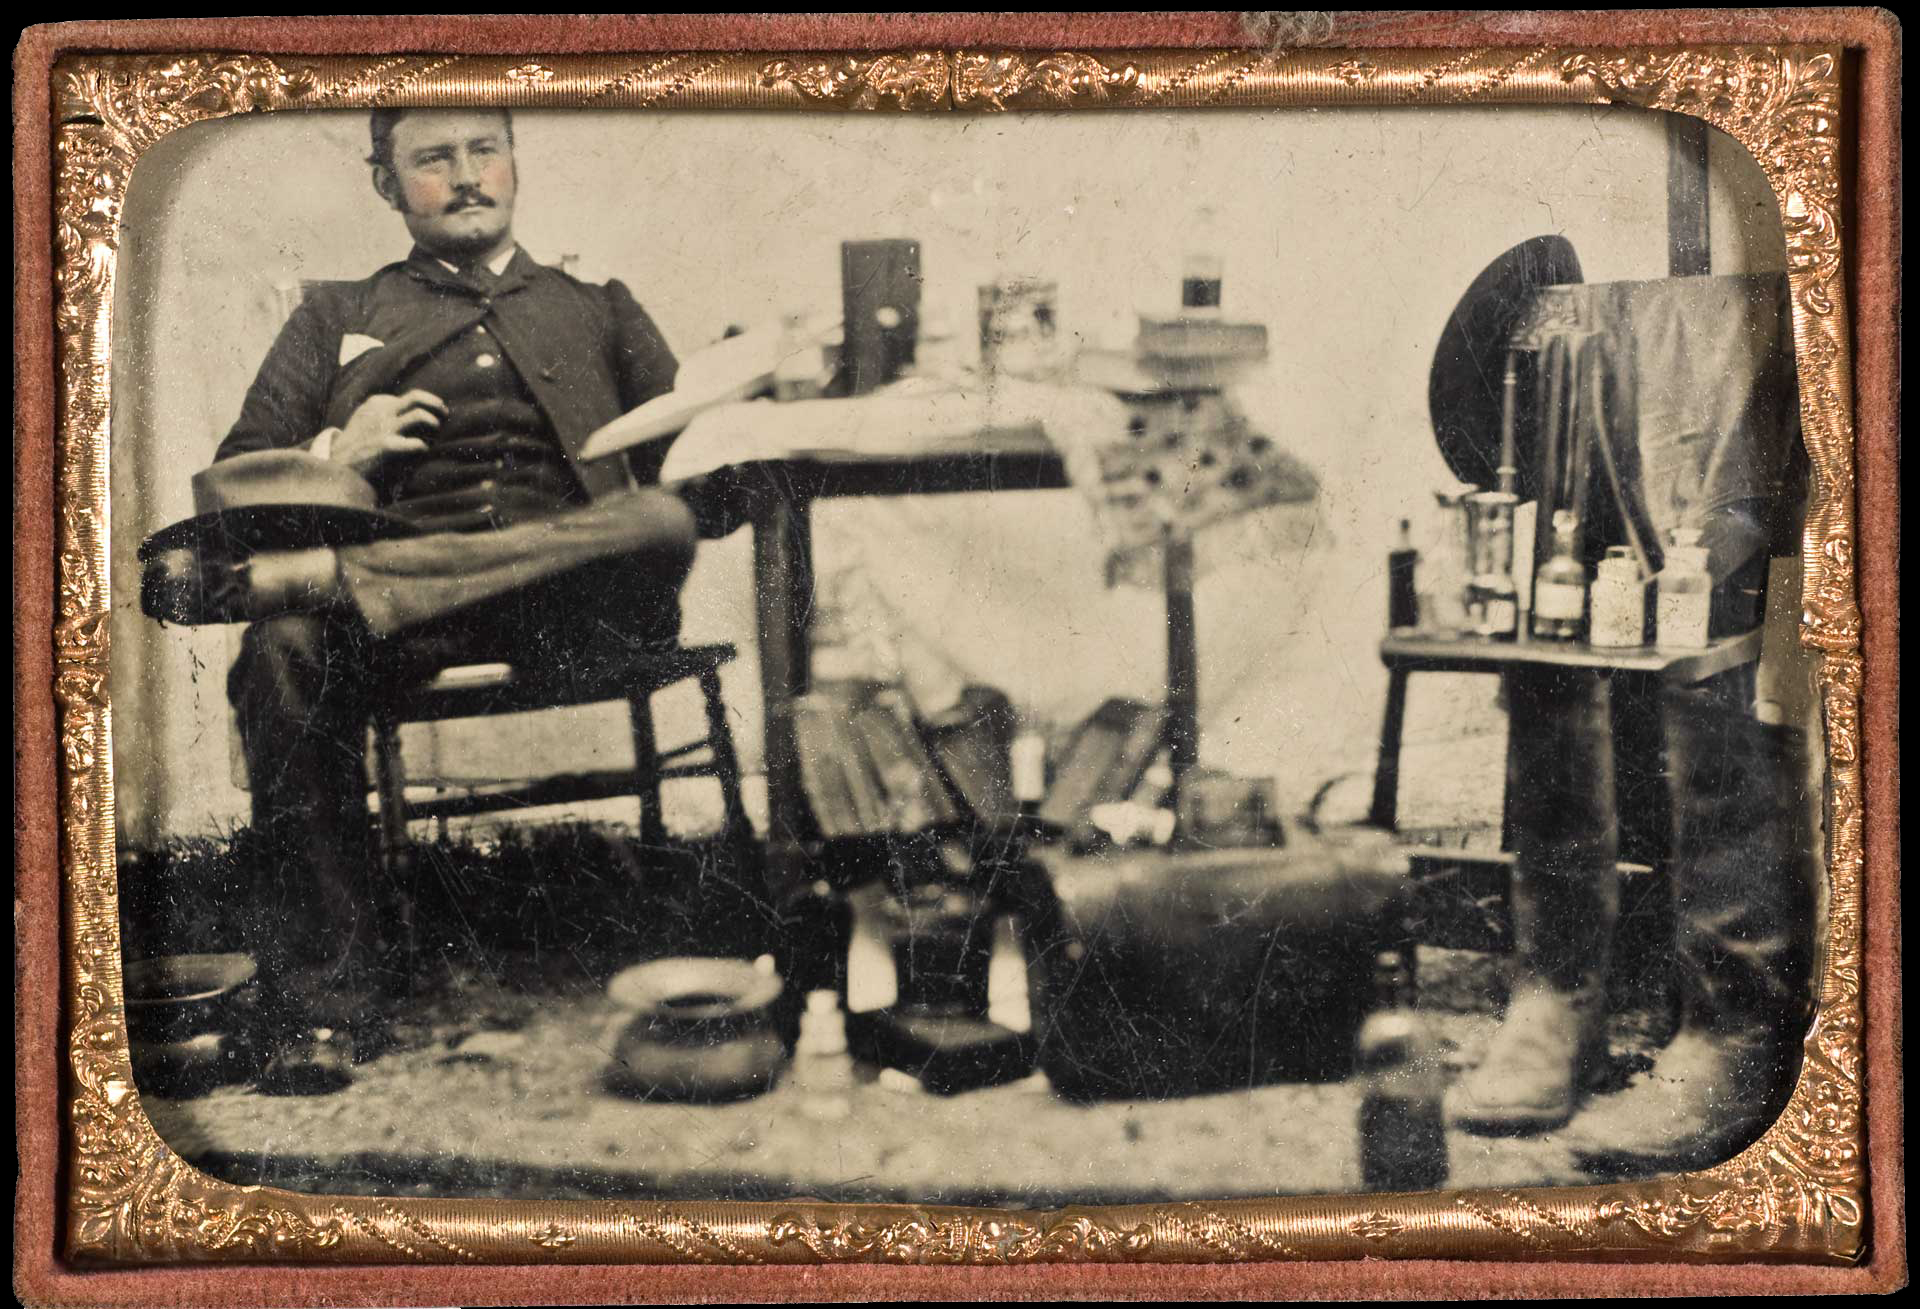 Behind the Lens | Civil War Medical Practice